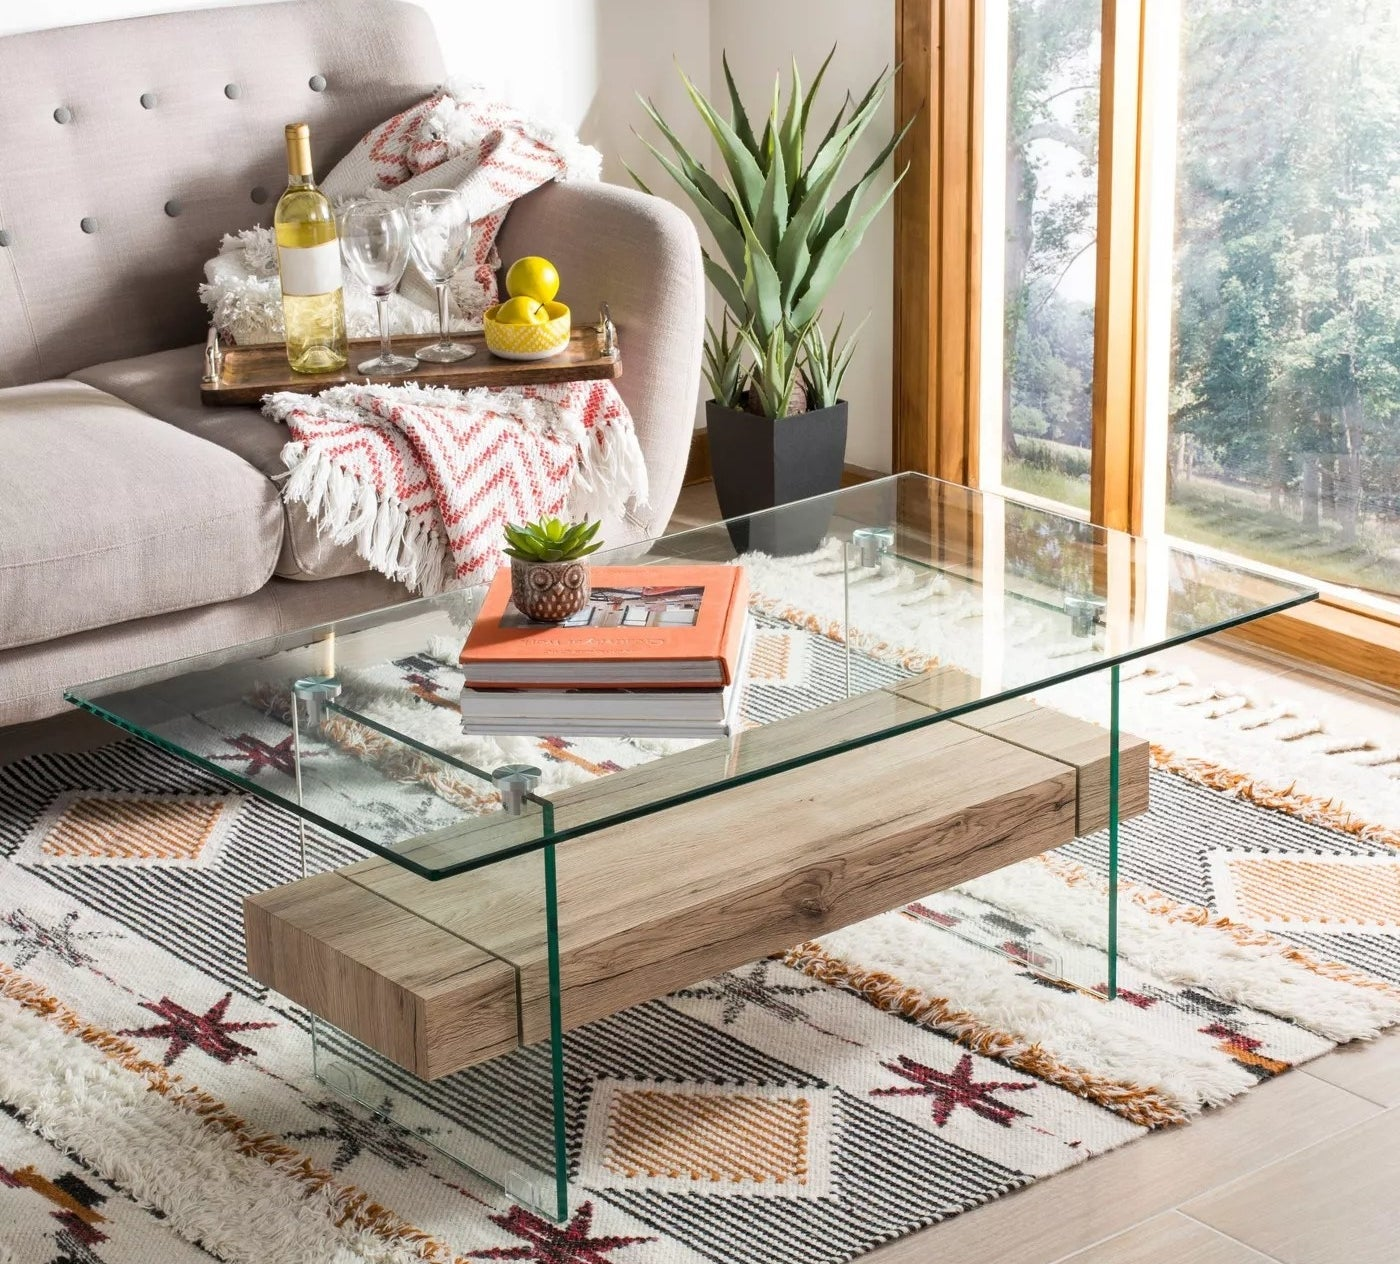 A table made of glass and wood